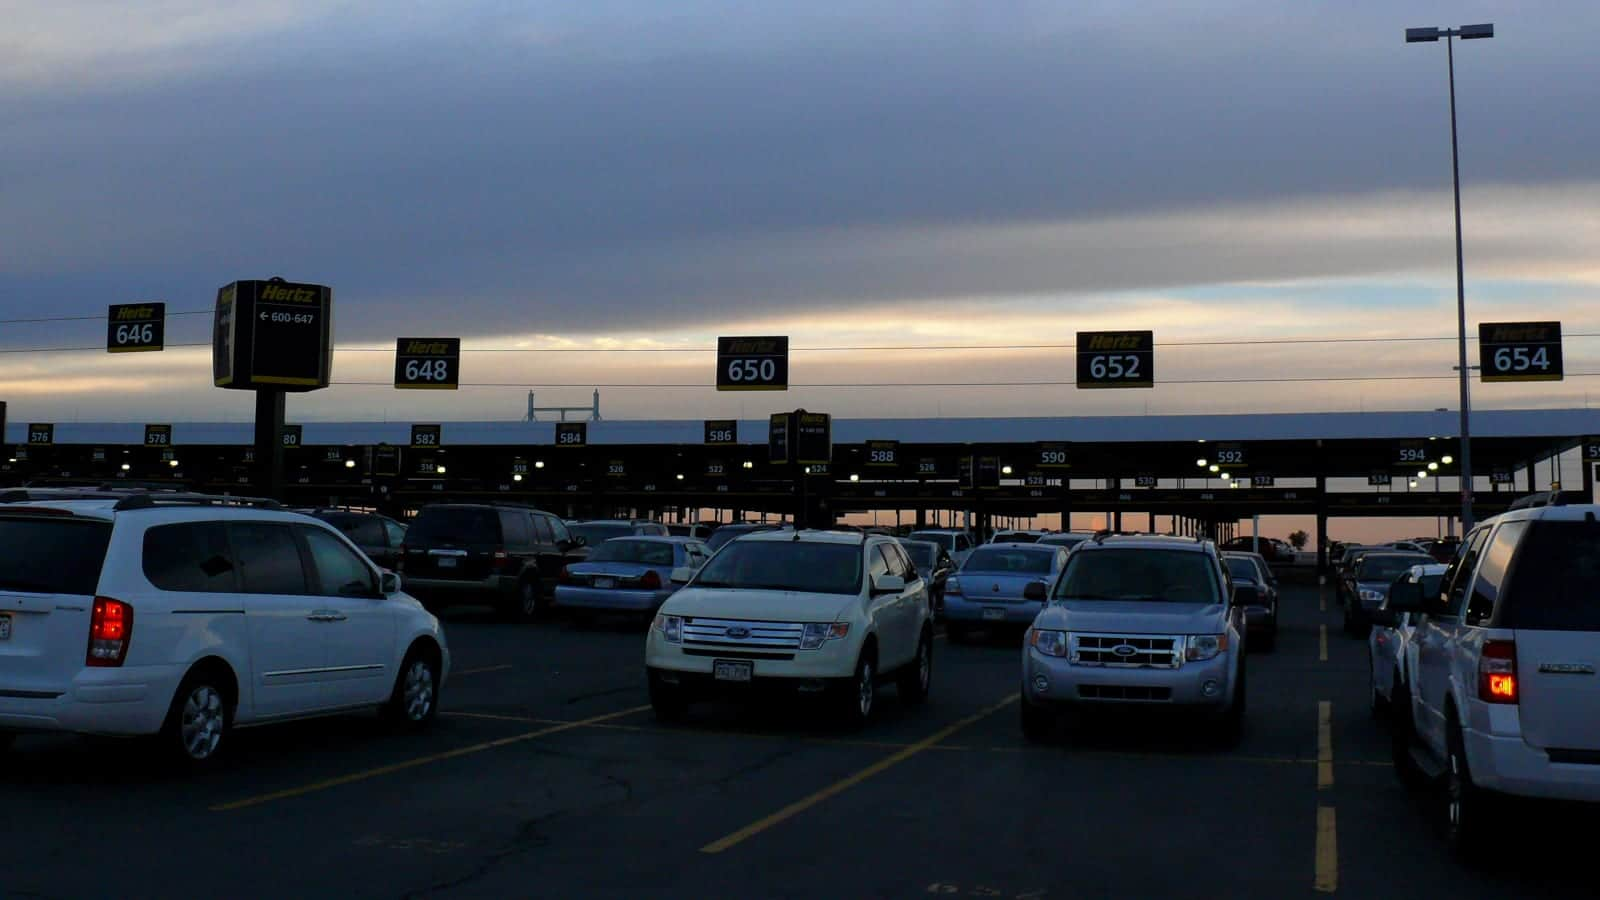 Denver International Airport Herz Rental Parking Lot